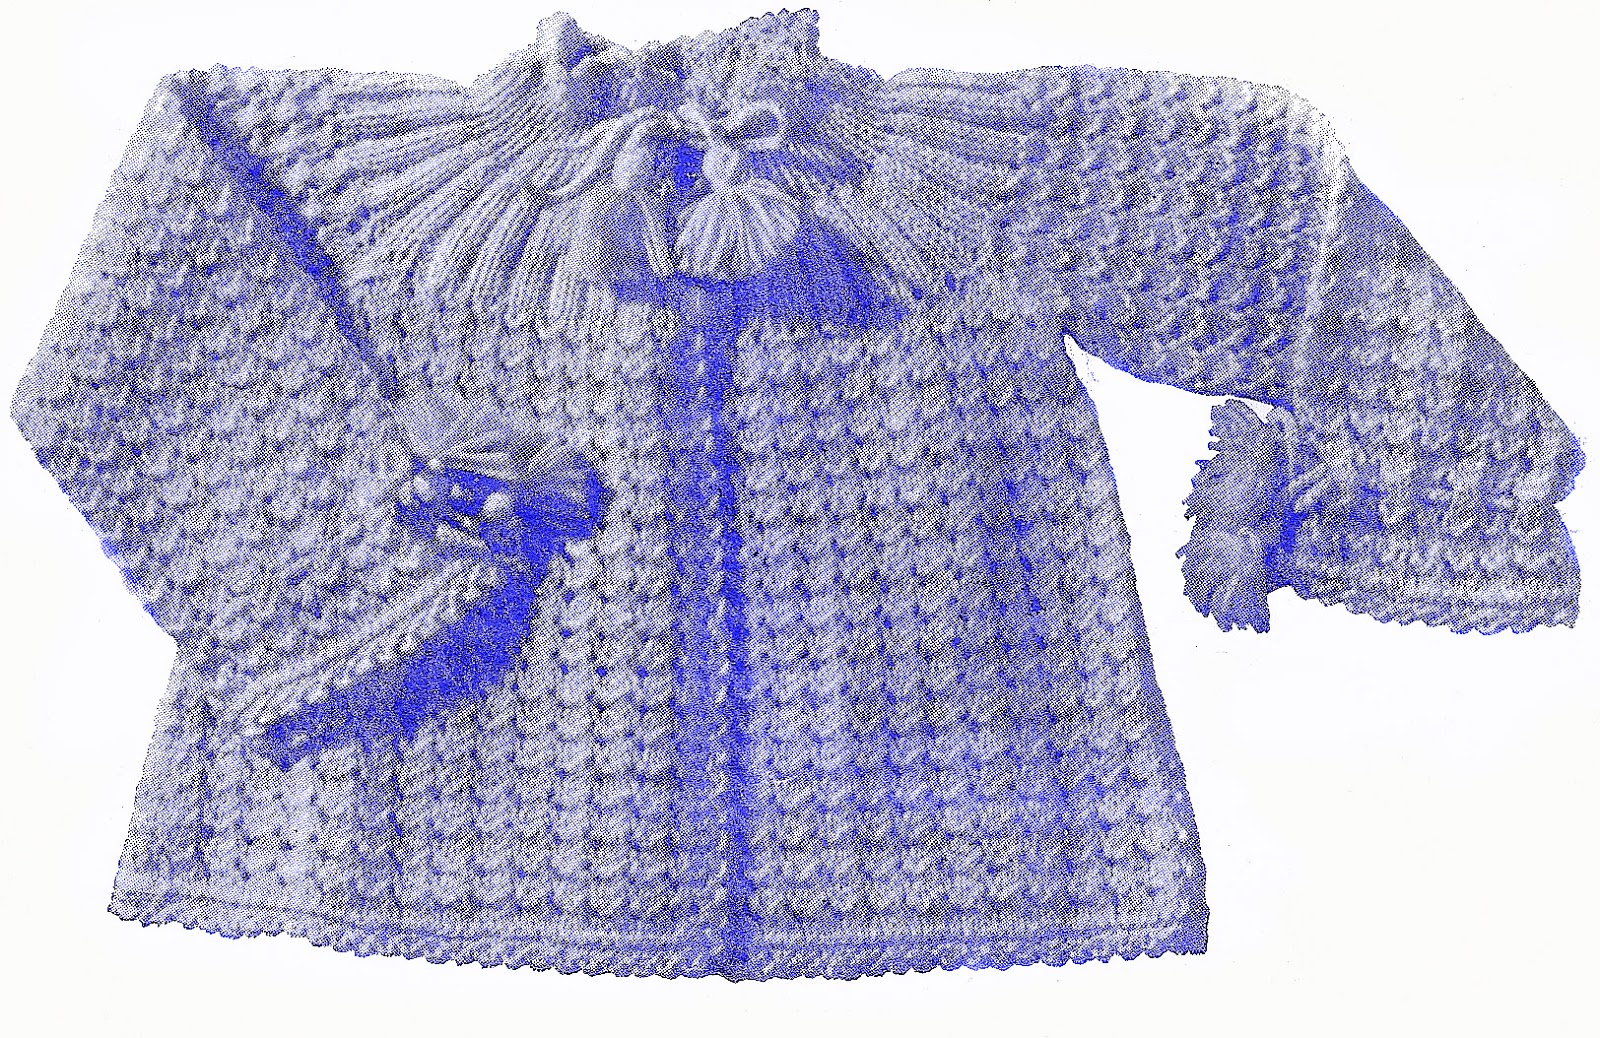 Knitting Patterns Hats For Beginners : Sentimental Baby: Vintage Knit Patterns for Babies